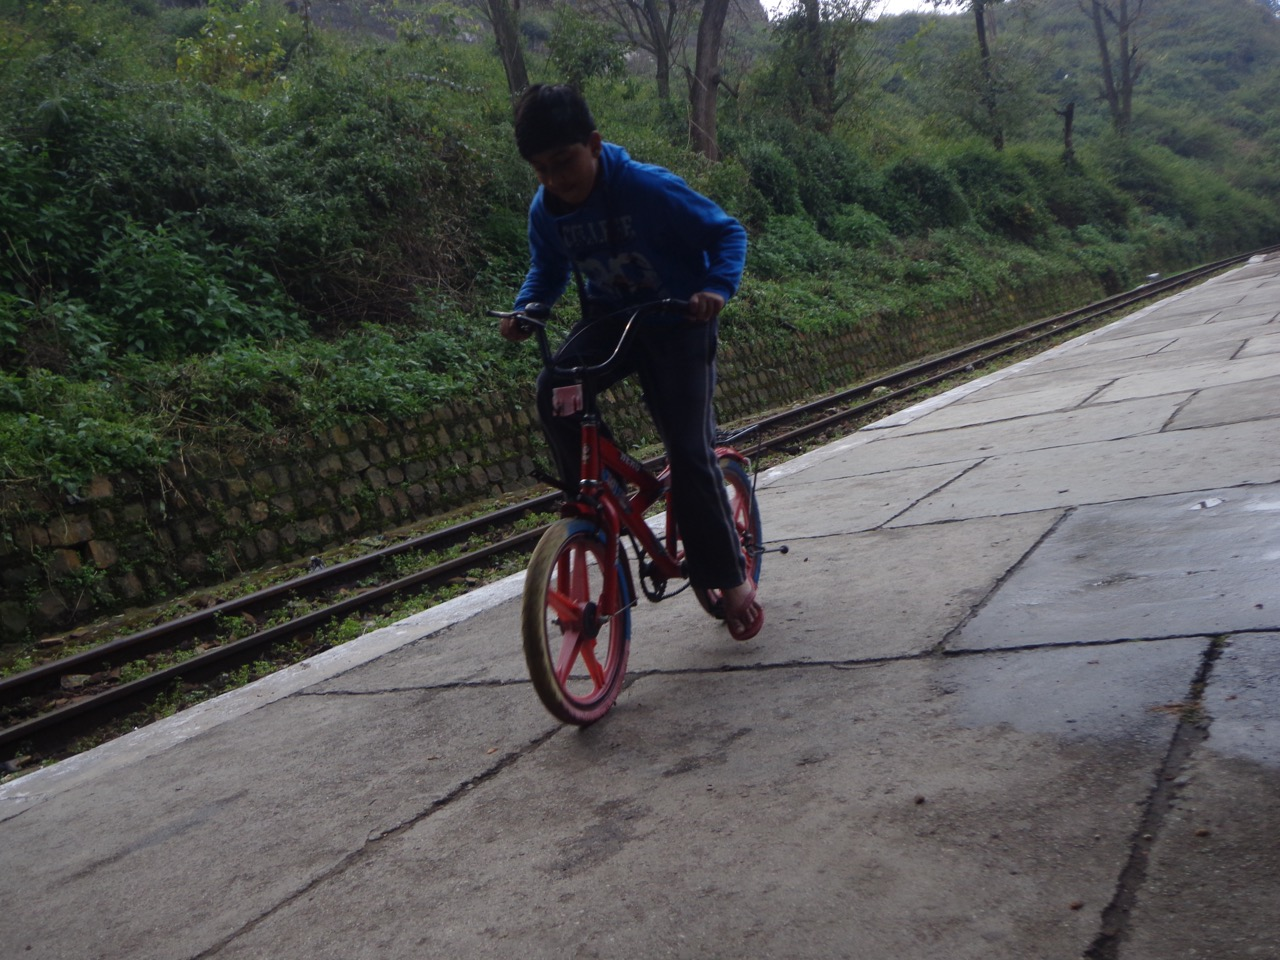 A kid was practicing his cycling skills on the small platform.